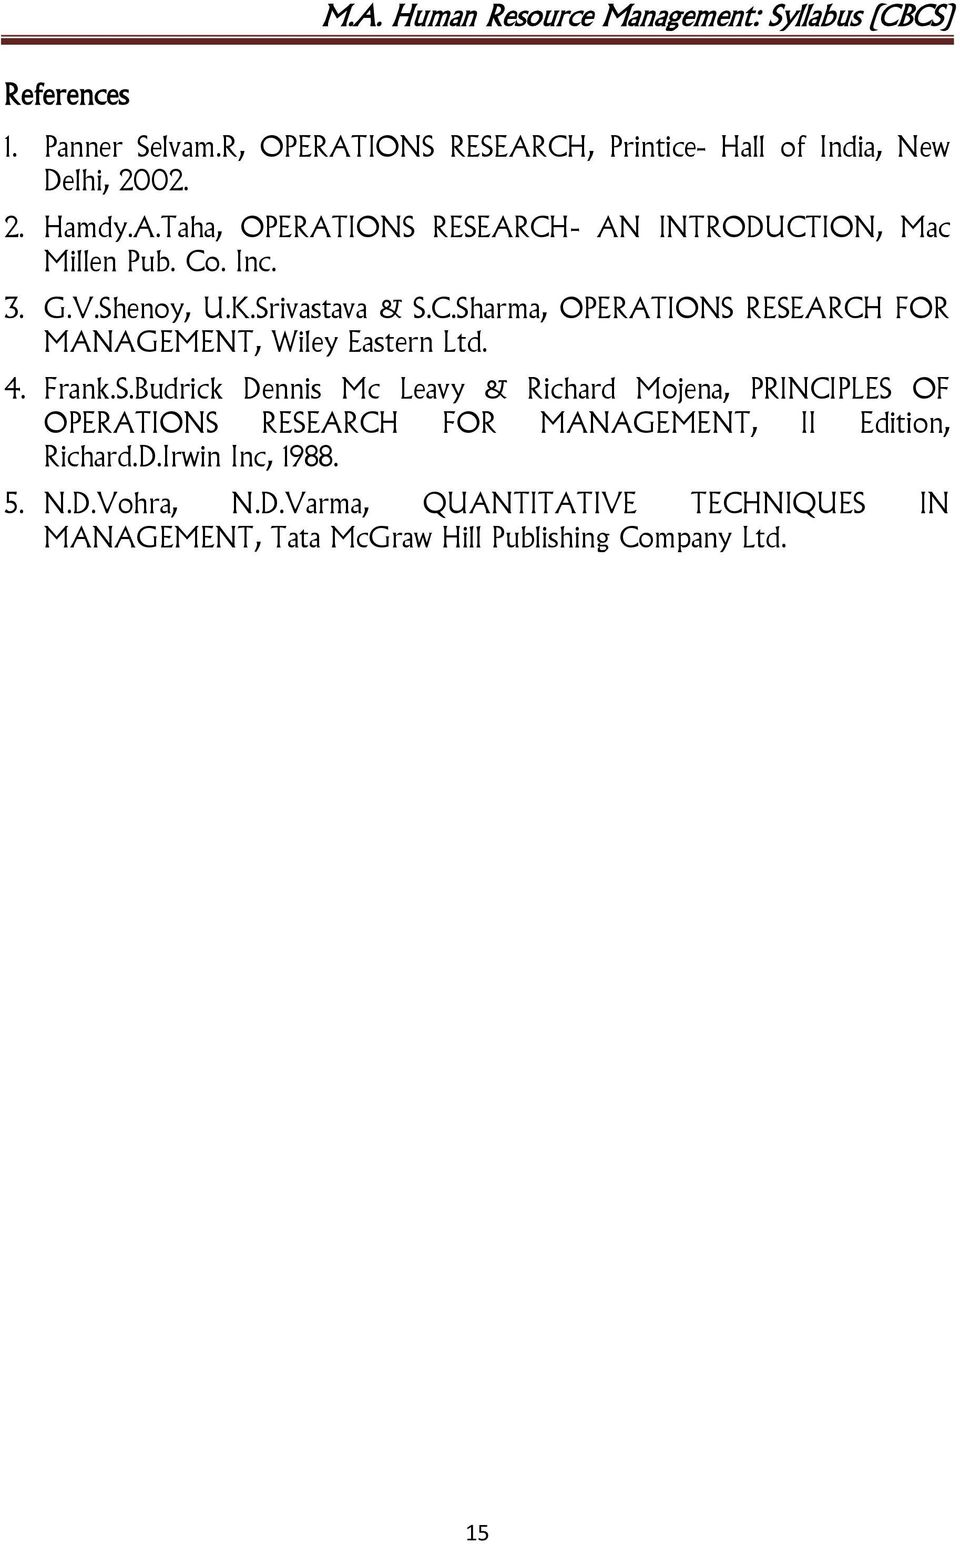 D.Irwin Inc, 1988. 5. N.D.Vohra, N.D.Varma, QUANTITATIVE TECHNIQUES IN MANAGEMENT, Tata McGraw Hill Publishing Company Ltd. 15